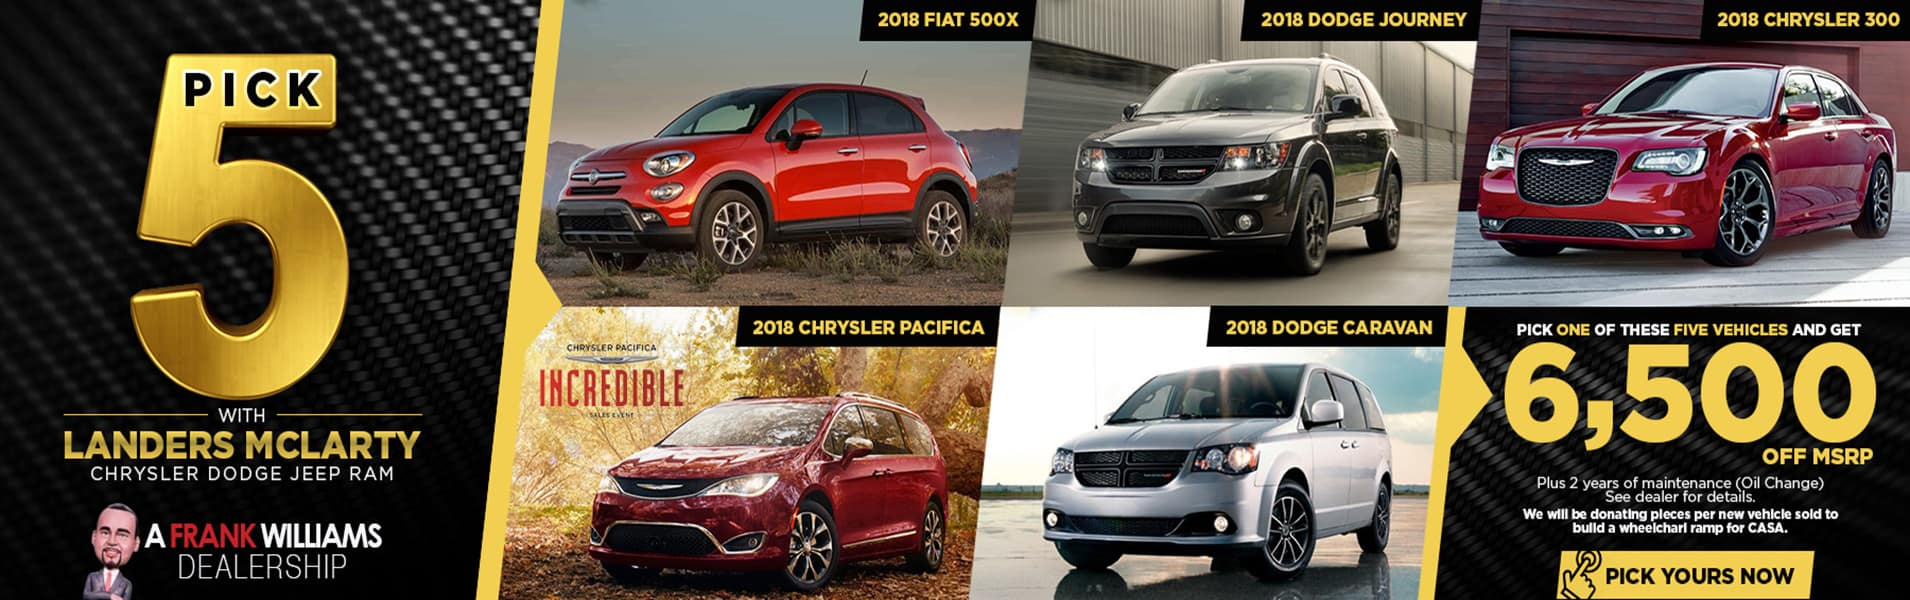 Pick 1 of these 5 Vehicles for $6,500 Off